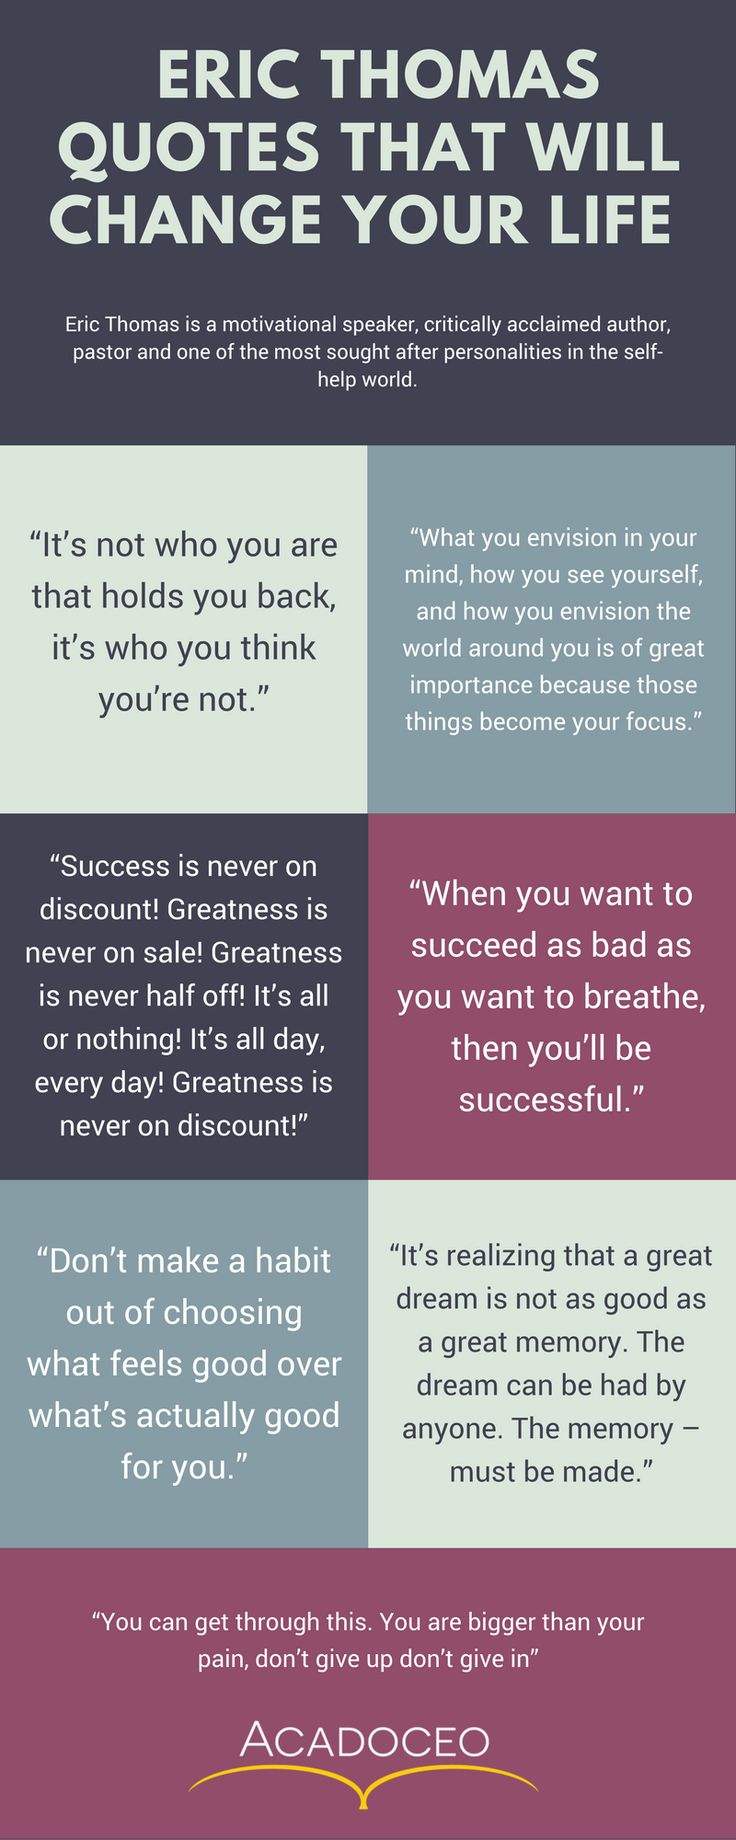 Famous Quotes About Changing Your Life: Best 25+ Good Man Quotes Ideas On Pinterest